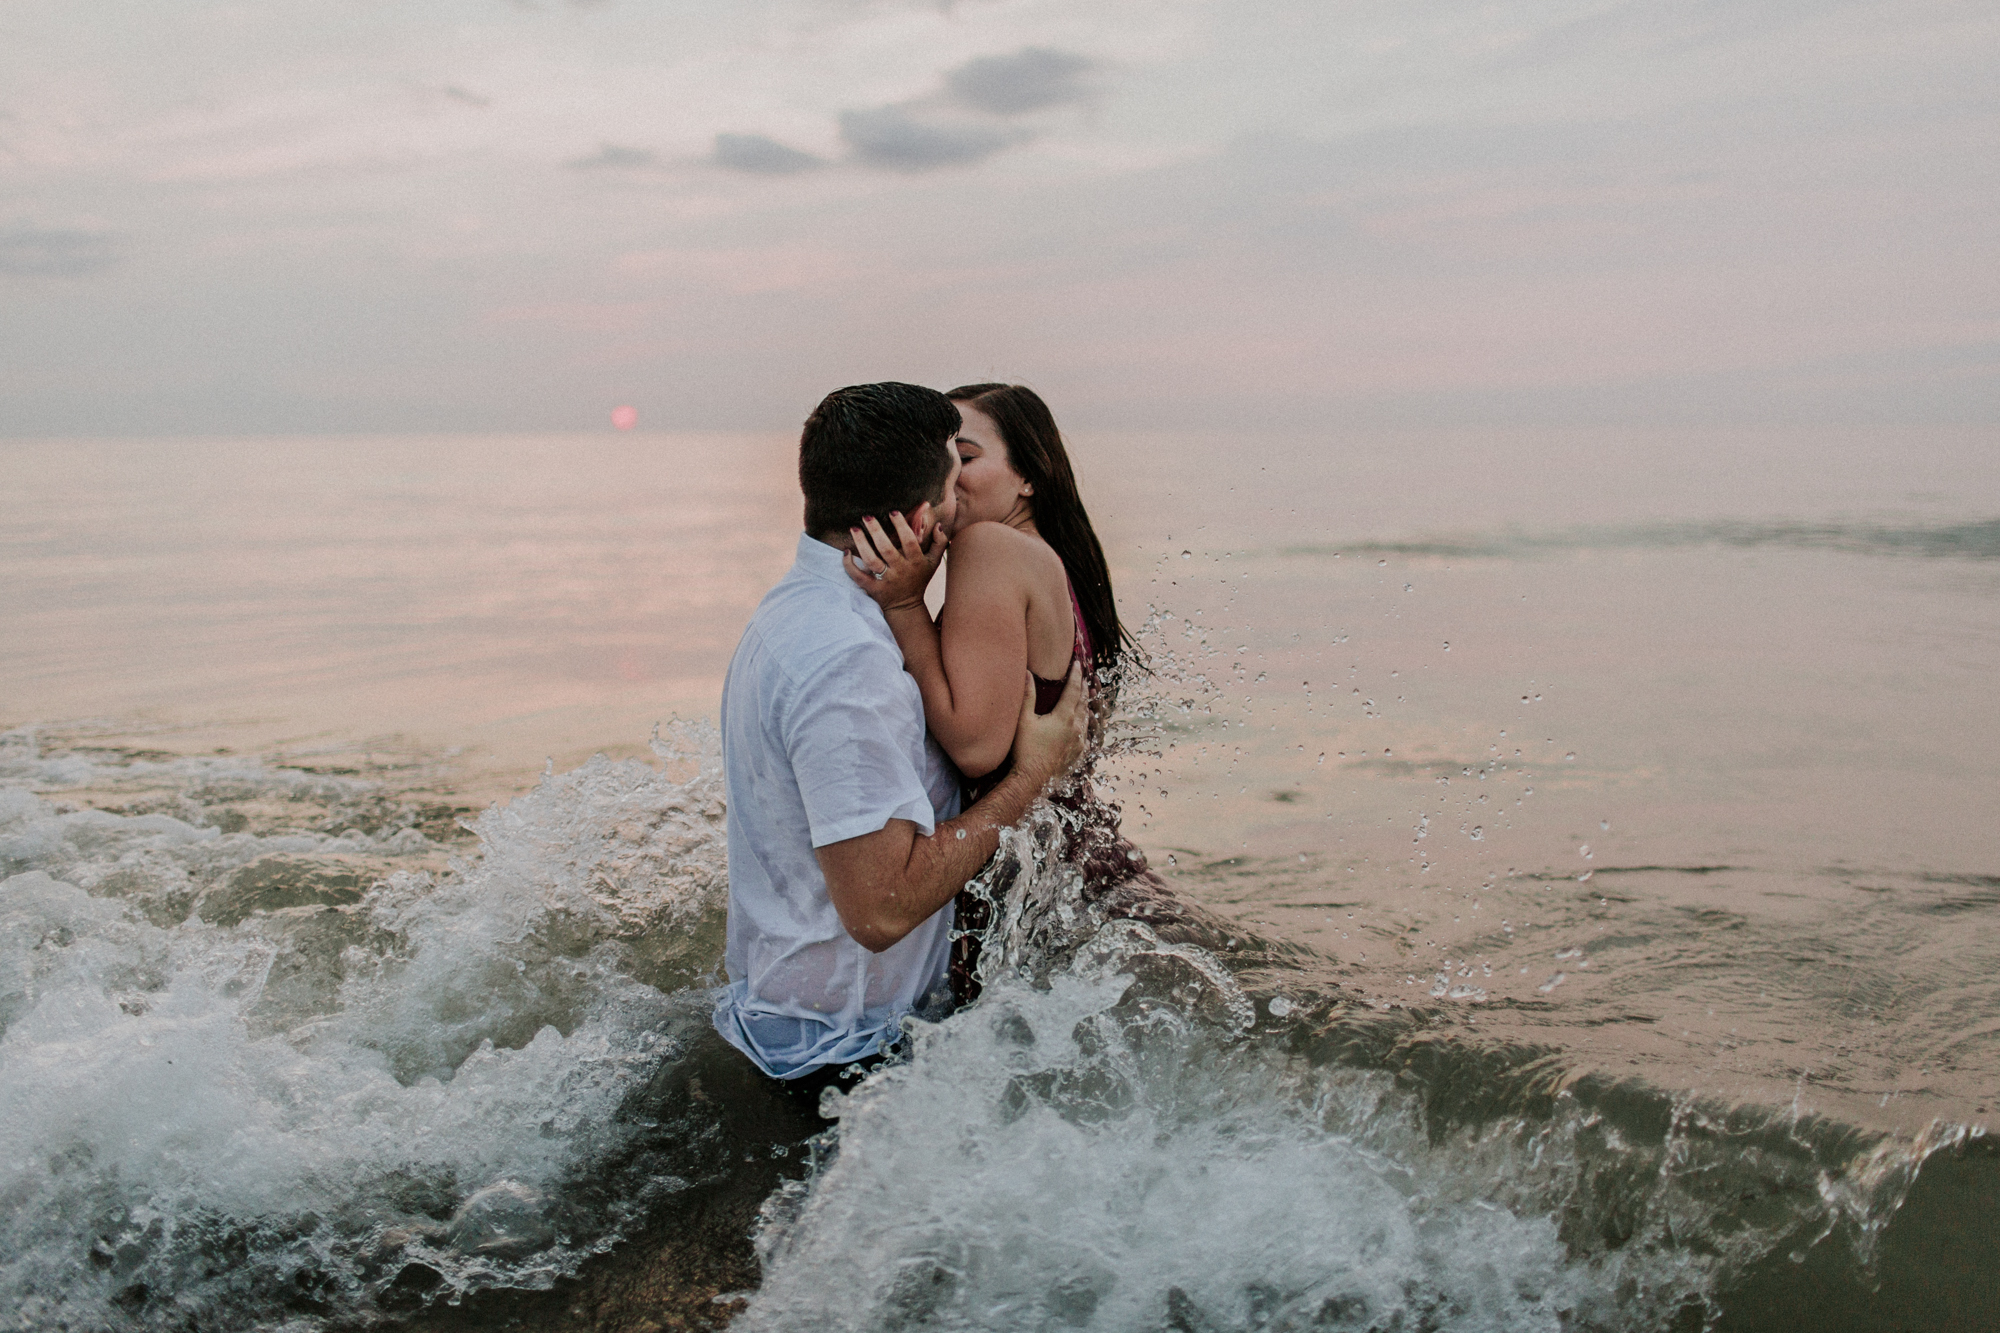 lake michigan engagement indiana elopement photographer wedding natural light playful beach couple water waves midwest